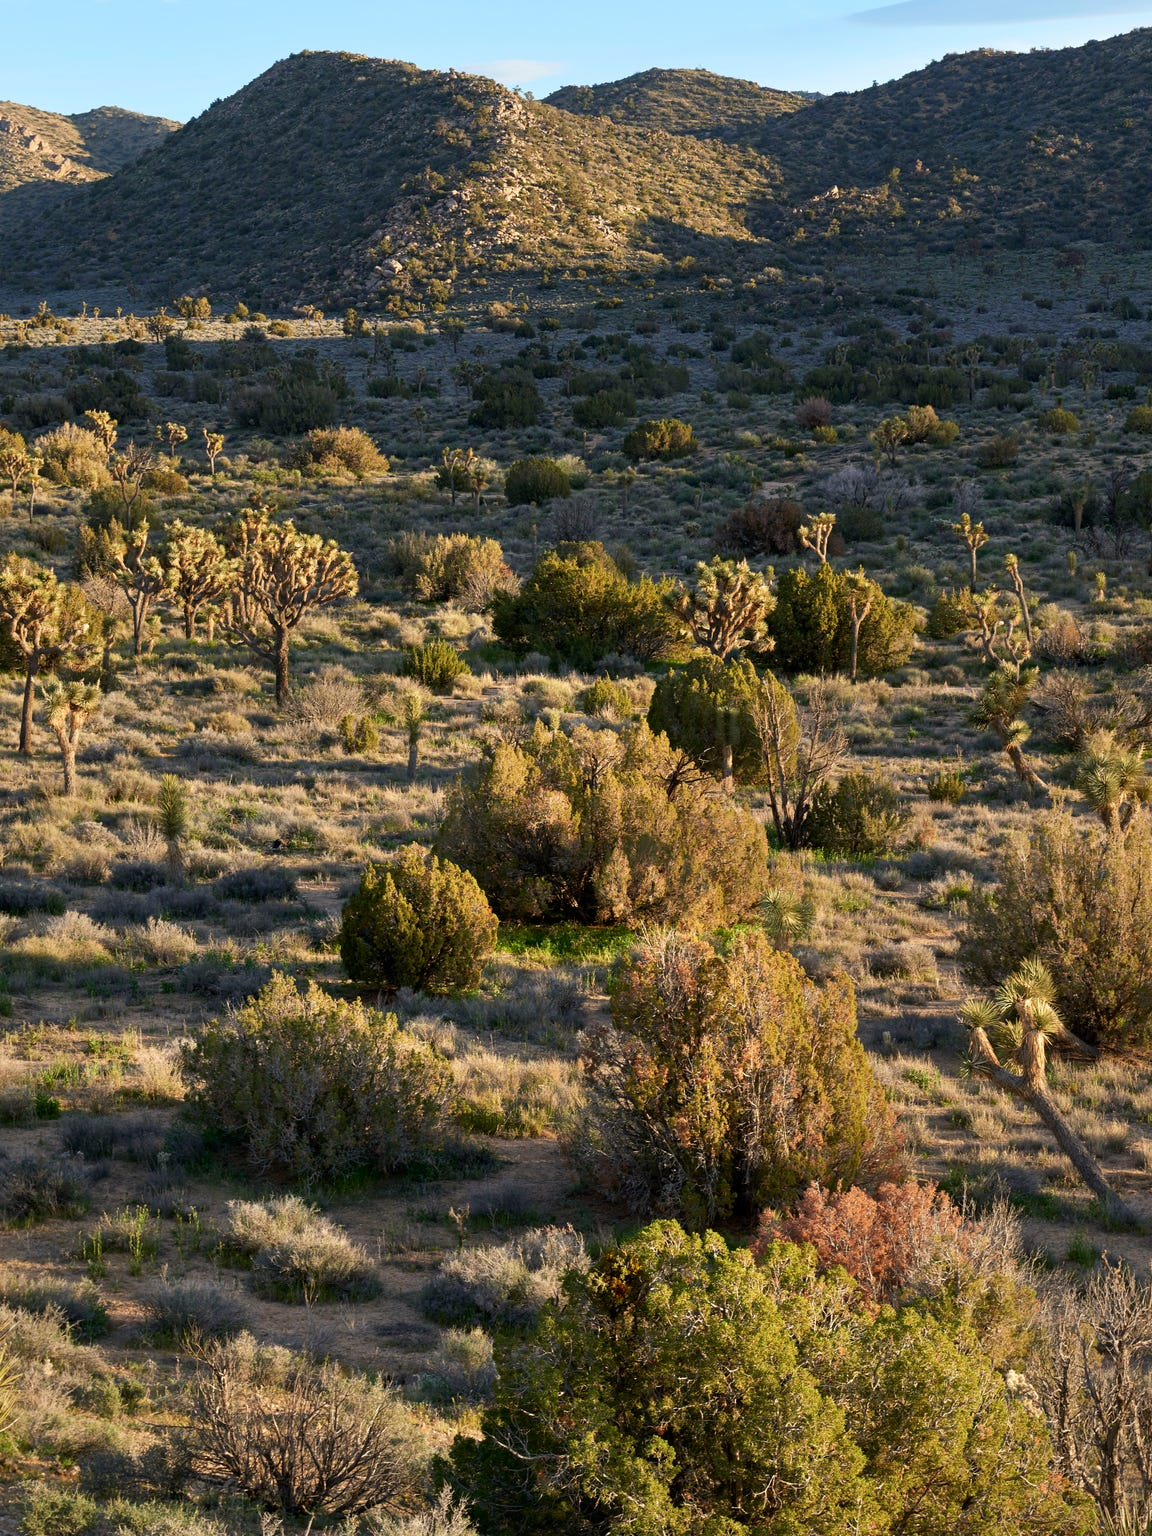 Fewer plants in the desert, whether due to death or